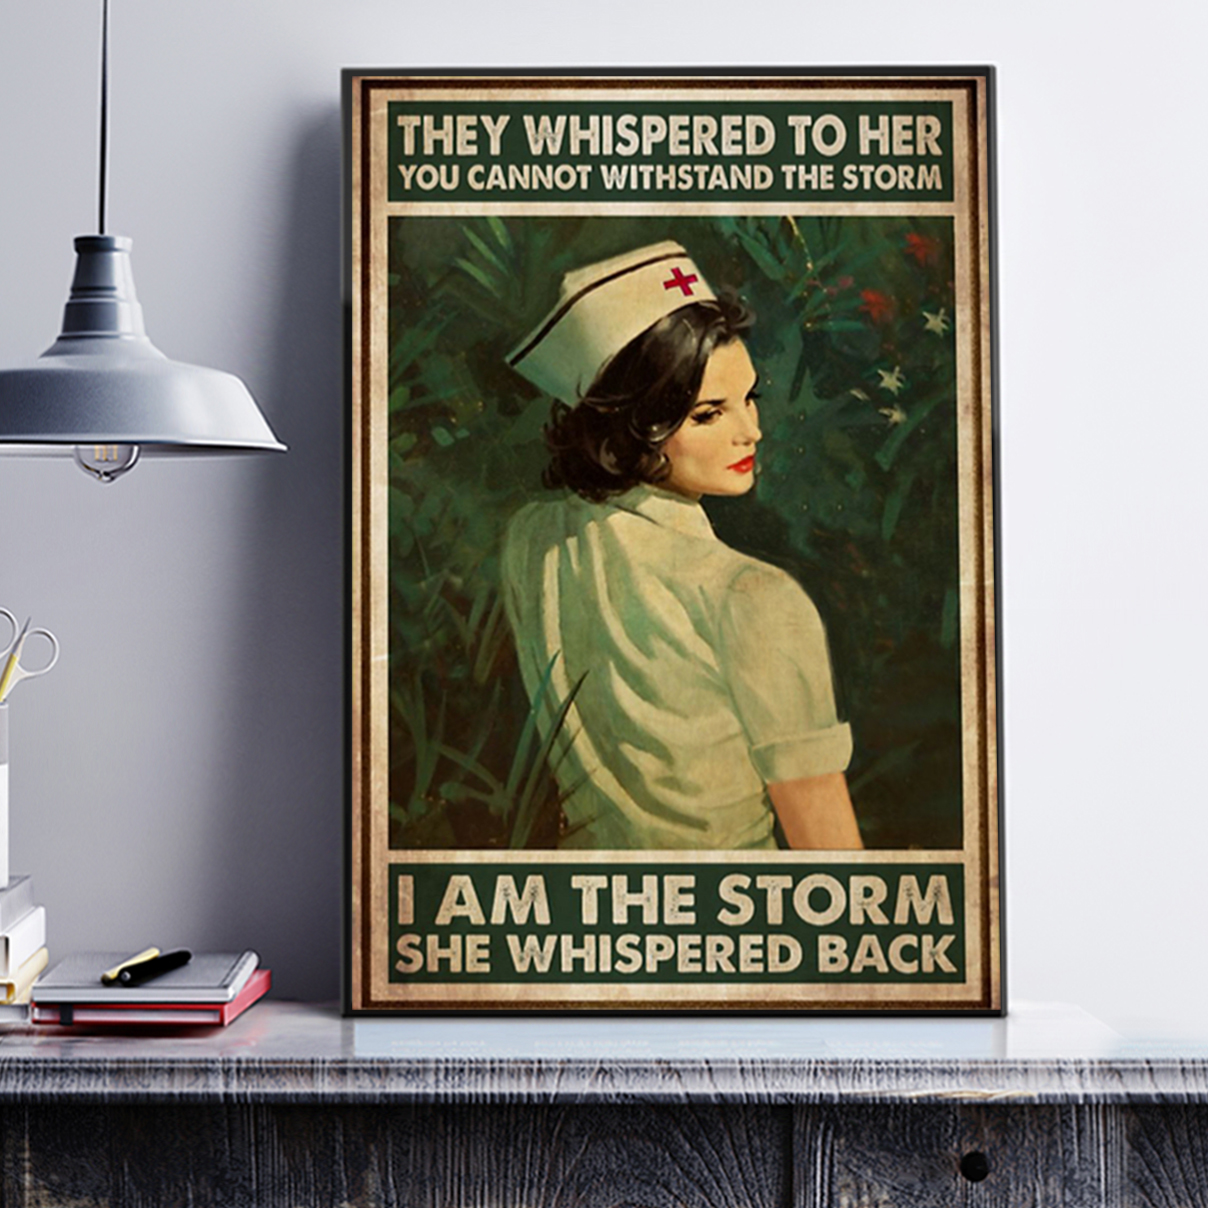 Nurse whispered to her you cannot withstand the storm poster A1